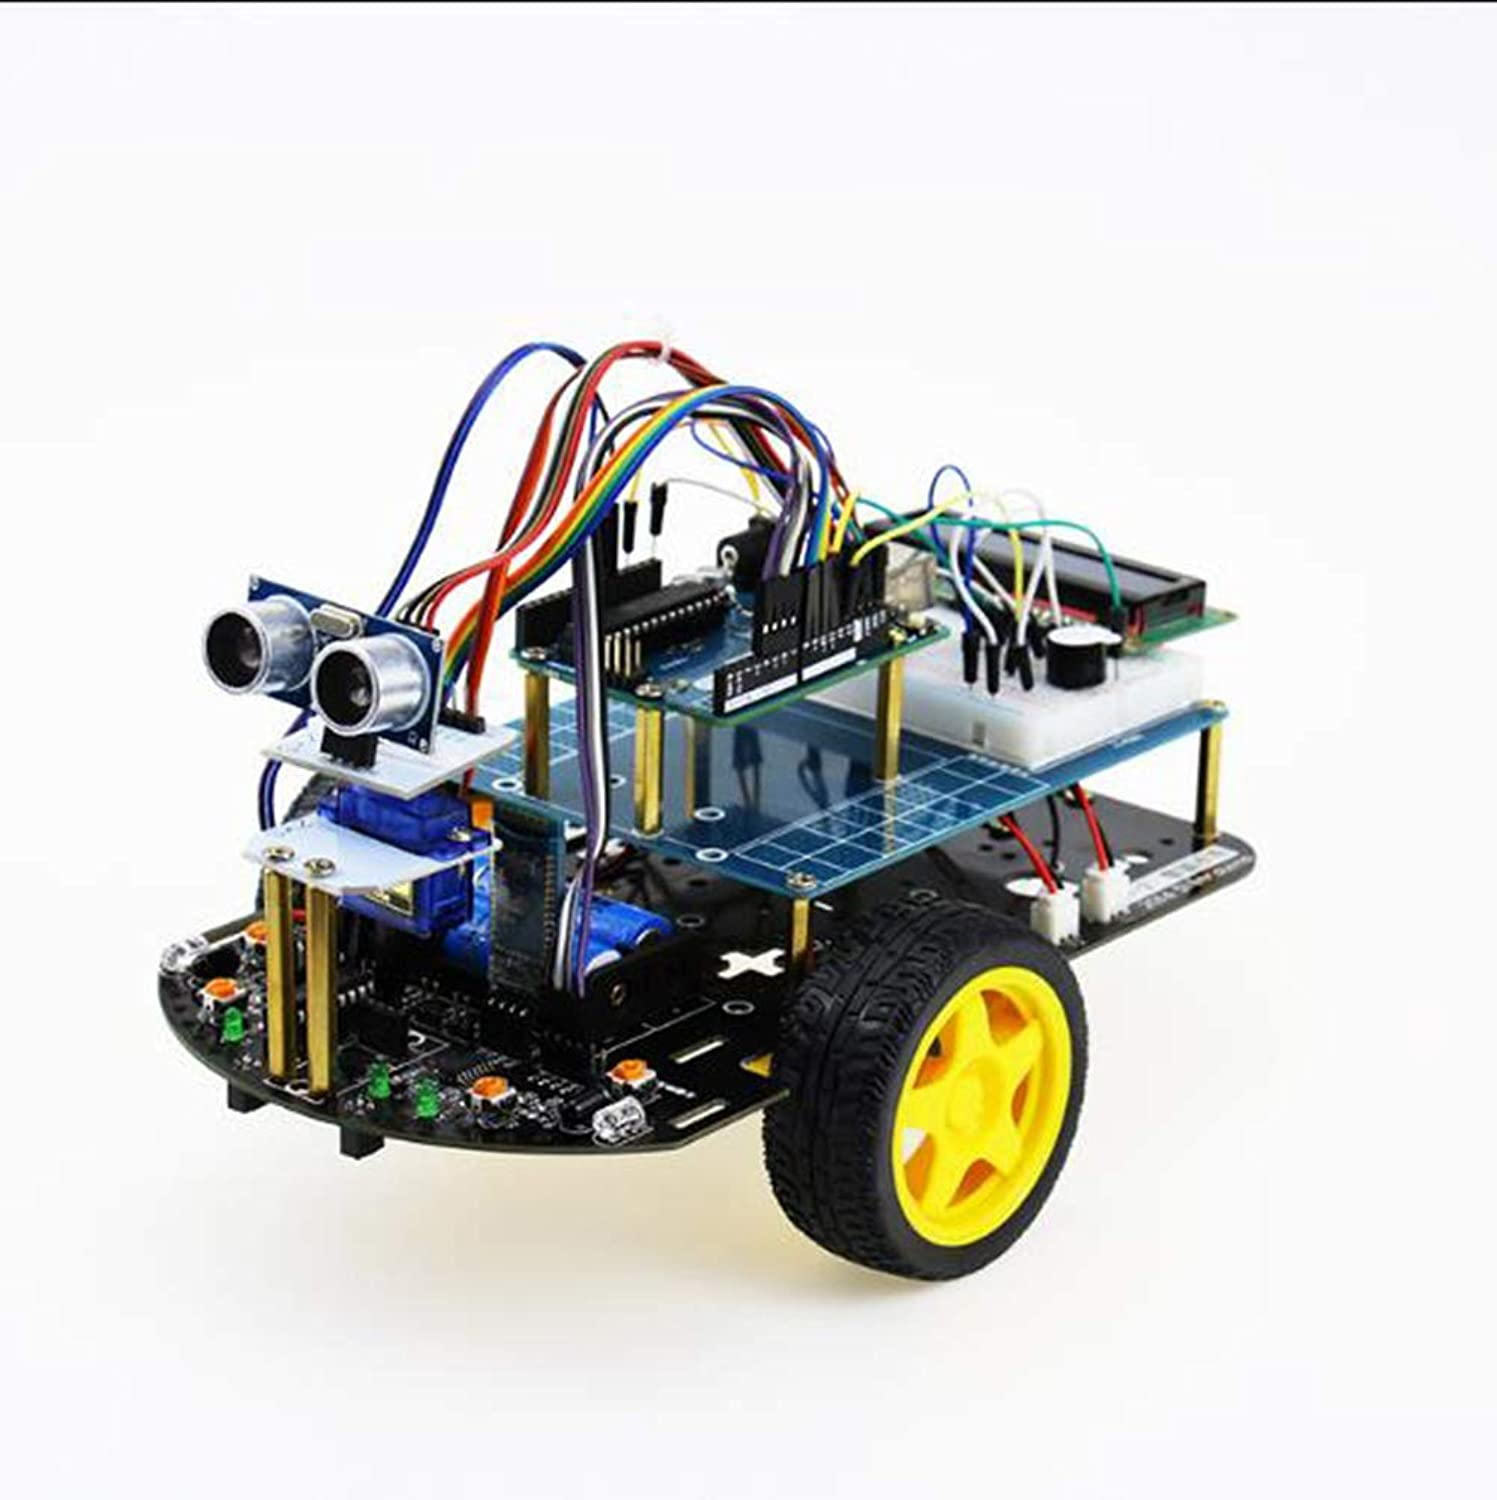 TX Micro Bit Robots Remote Control Coding Learning Education Kit Intelligent DIY Arduino UNO R3